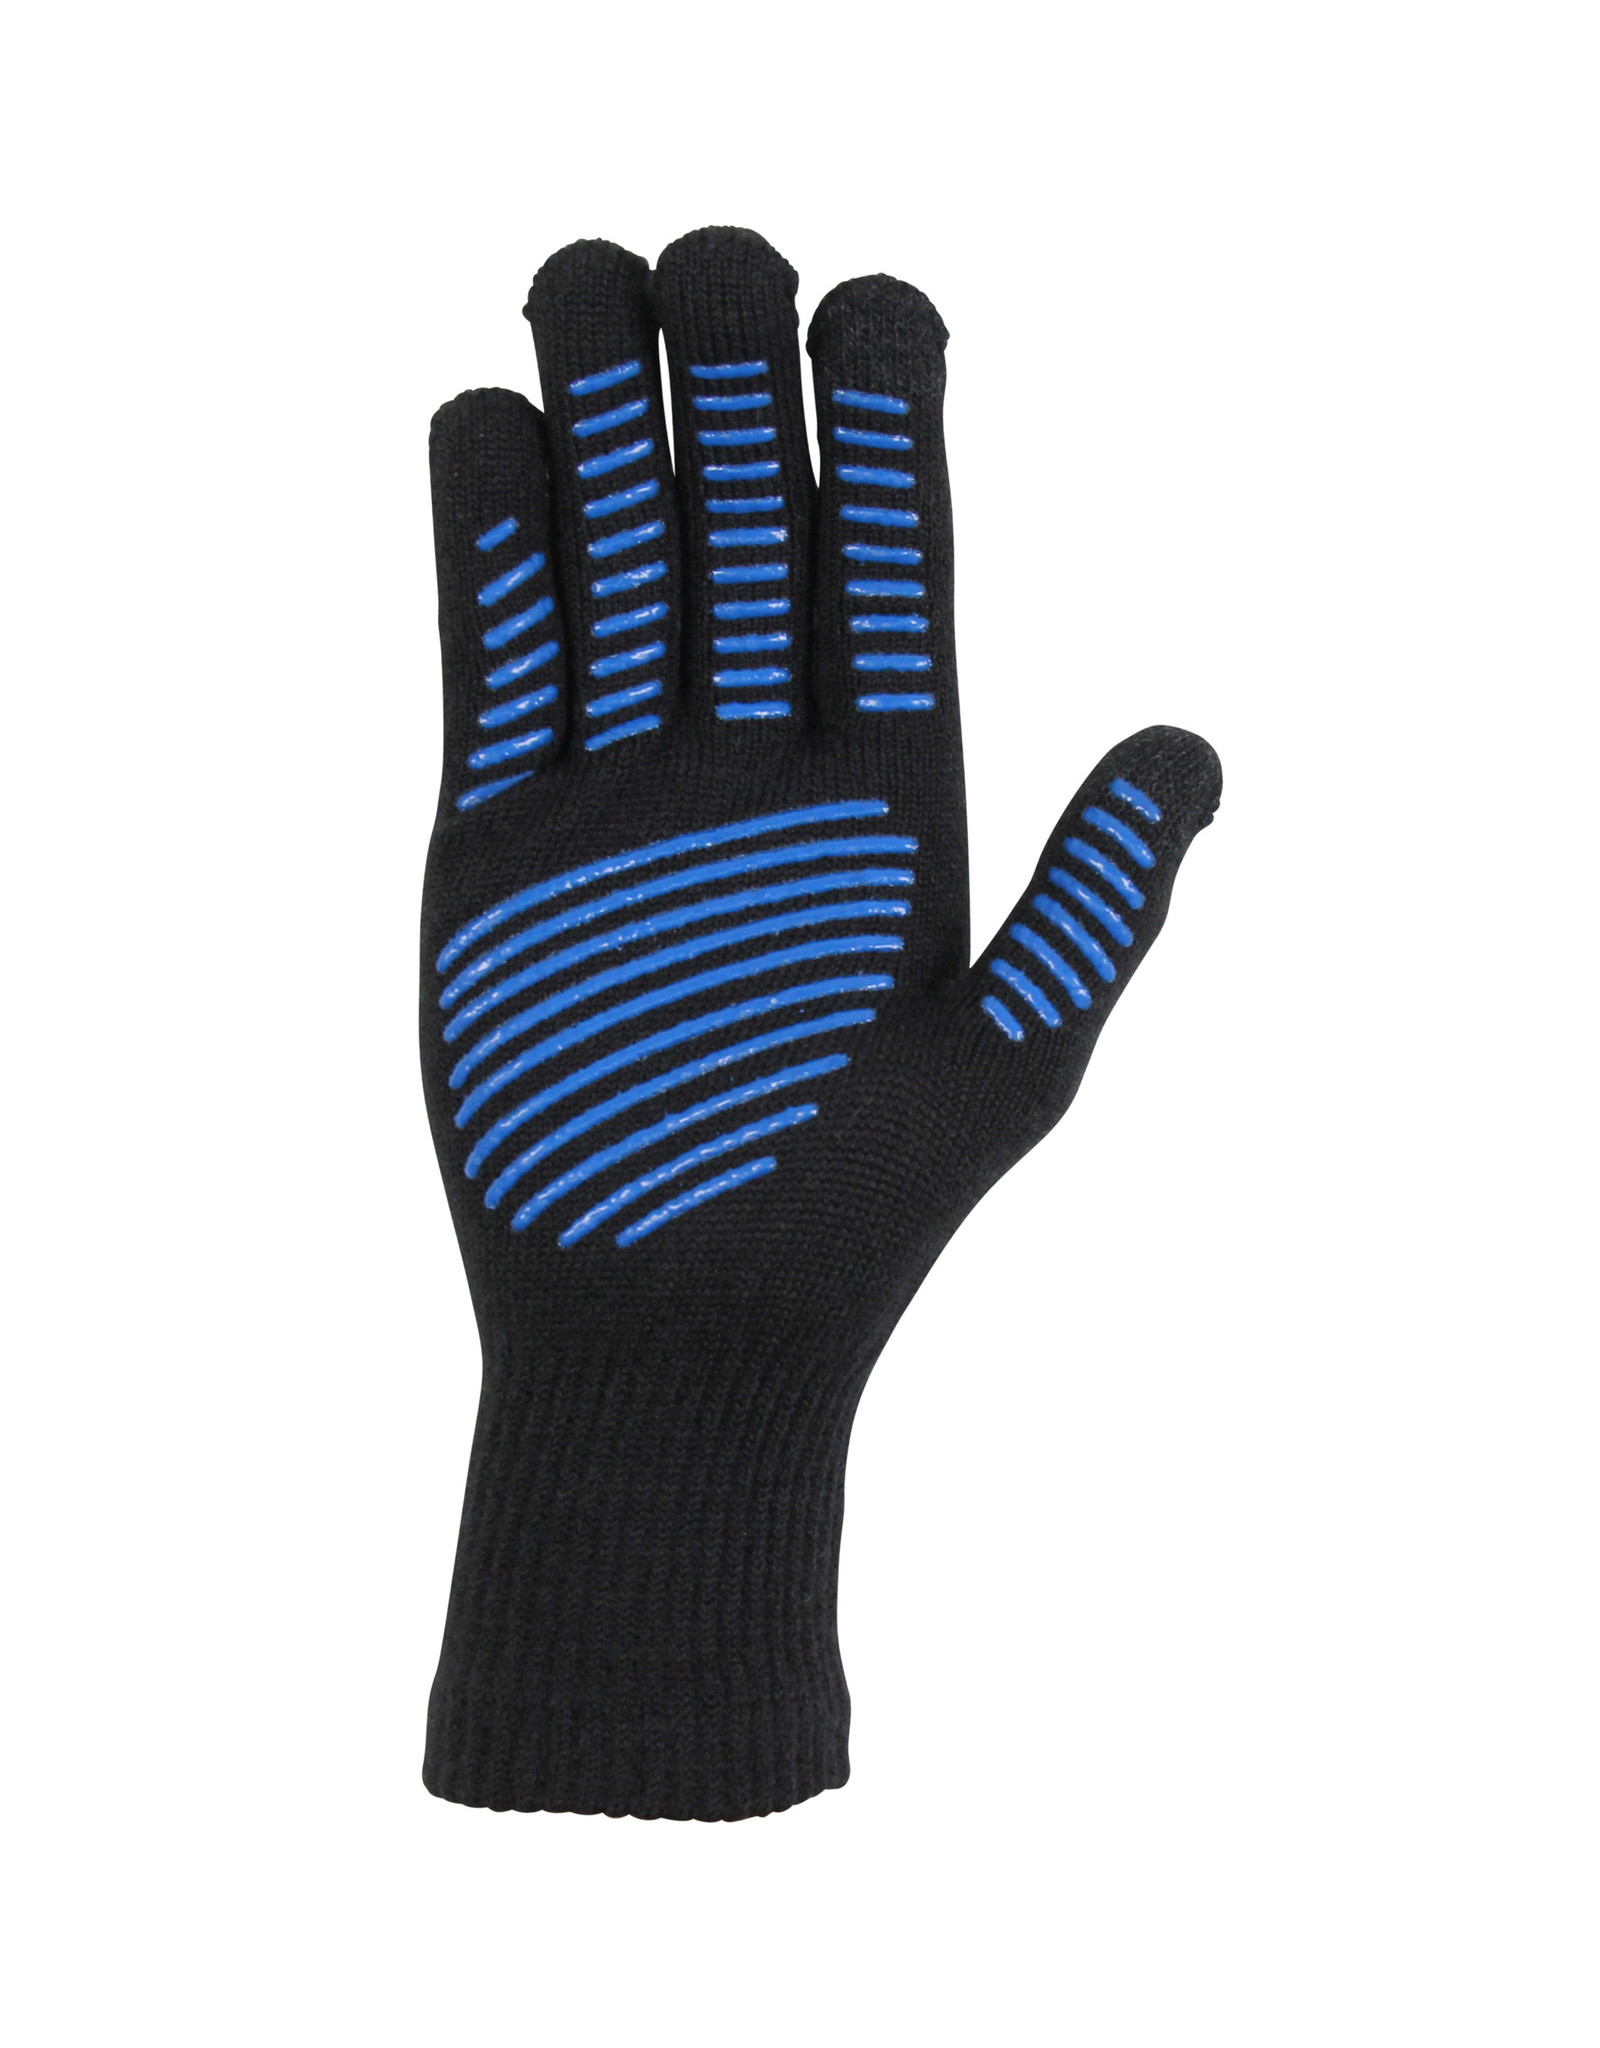 AFTCO AFTCO Warm Wool Merino Gloves